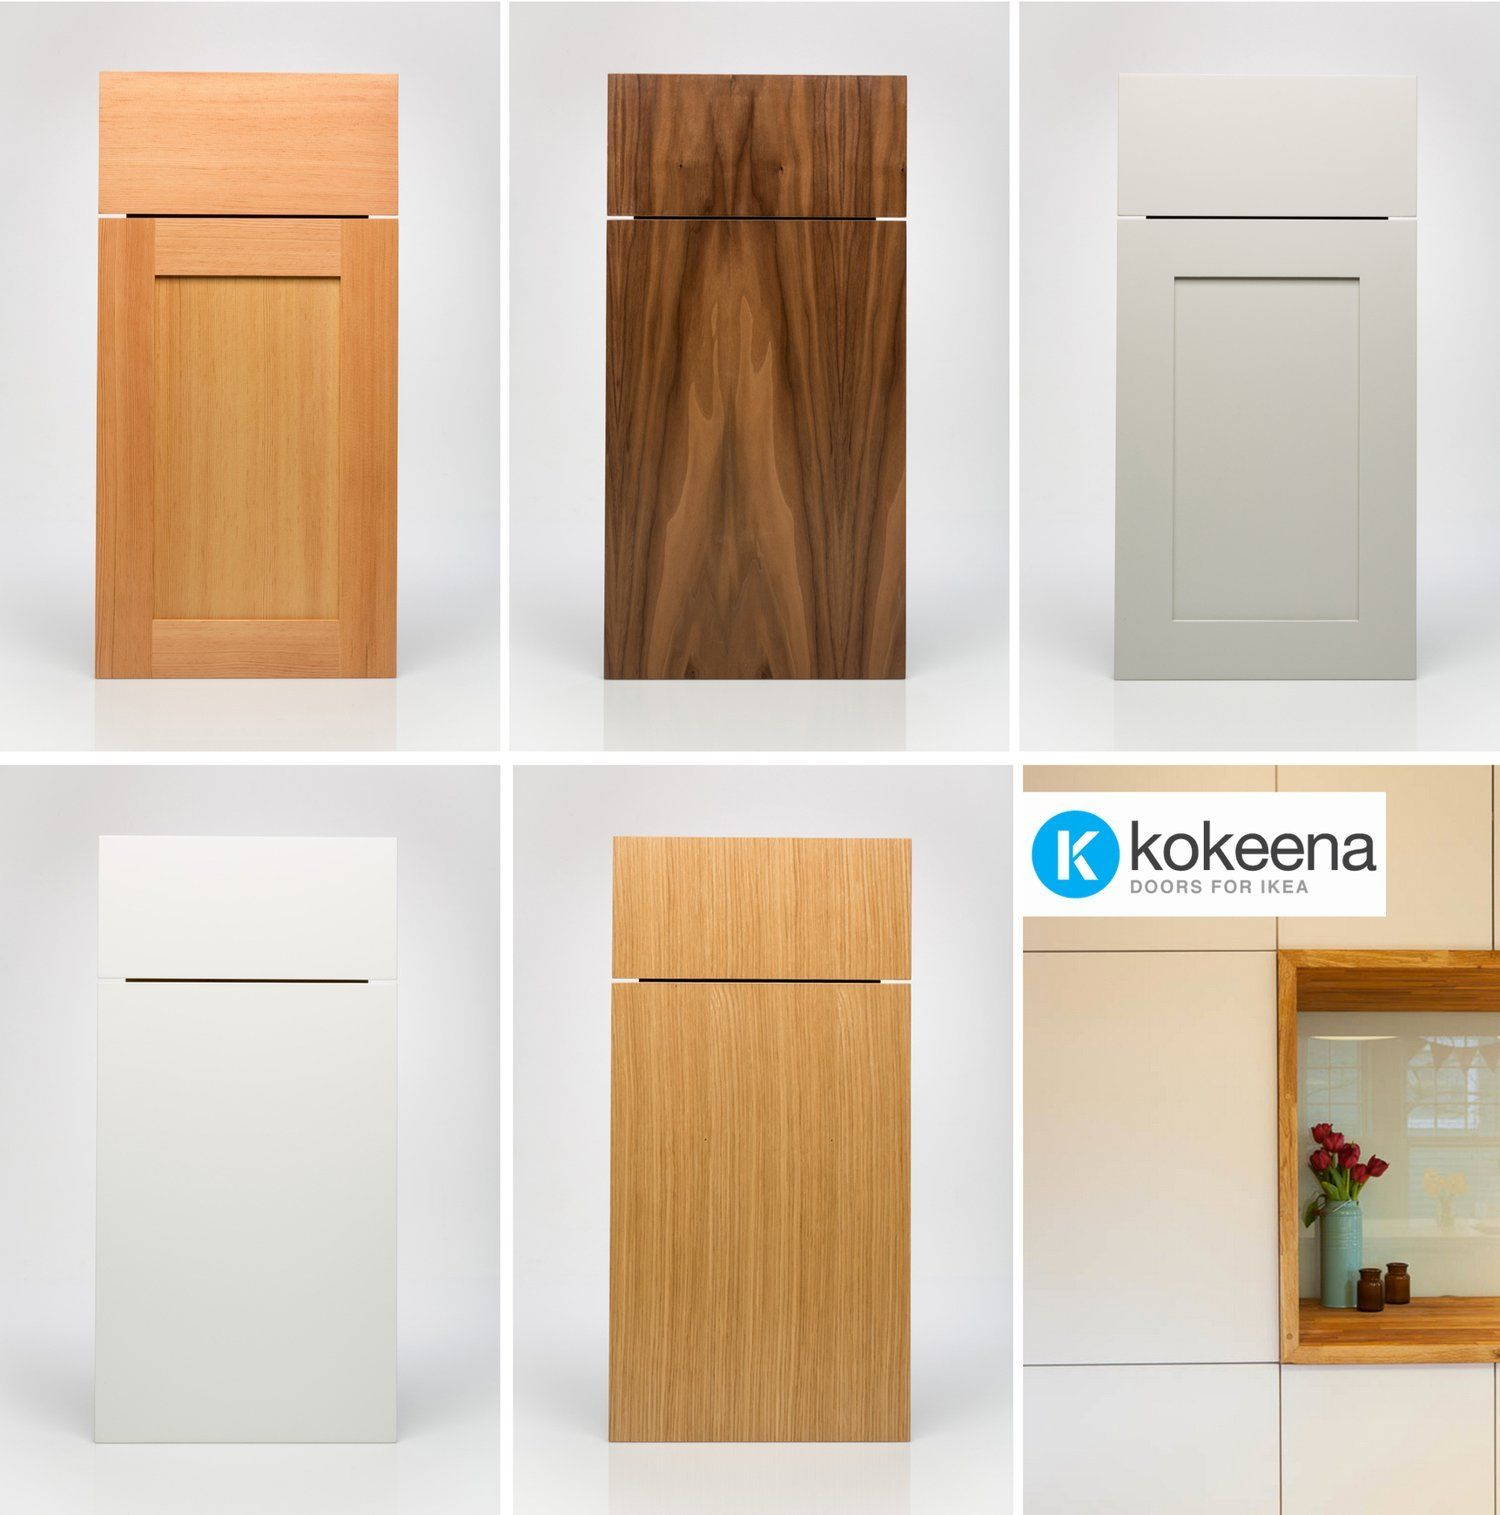 kokeena real wood ready made cabinet doors for ikea akurum kitchens - Ikea Akurum Kitchen Cabinets